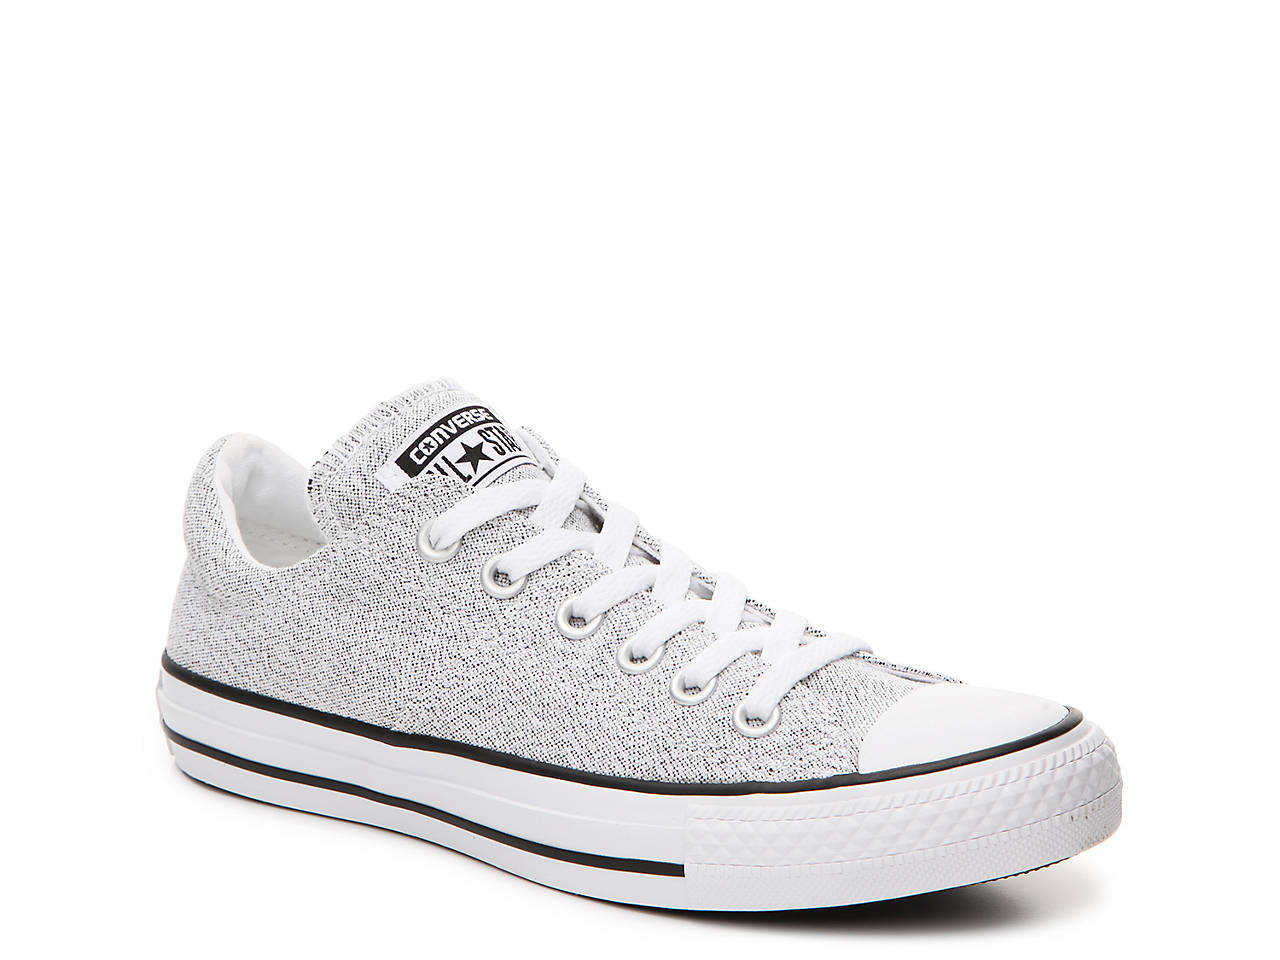 175e194feab9f3 Converse Chuck Taylor All Star Madison Sneaker - Women s Women s ...